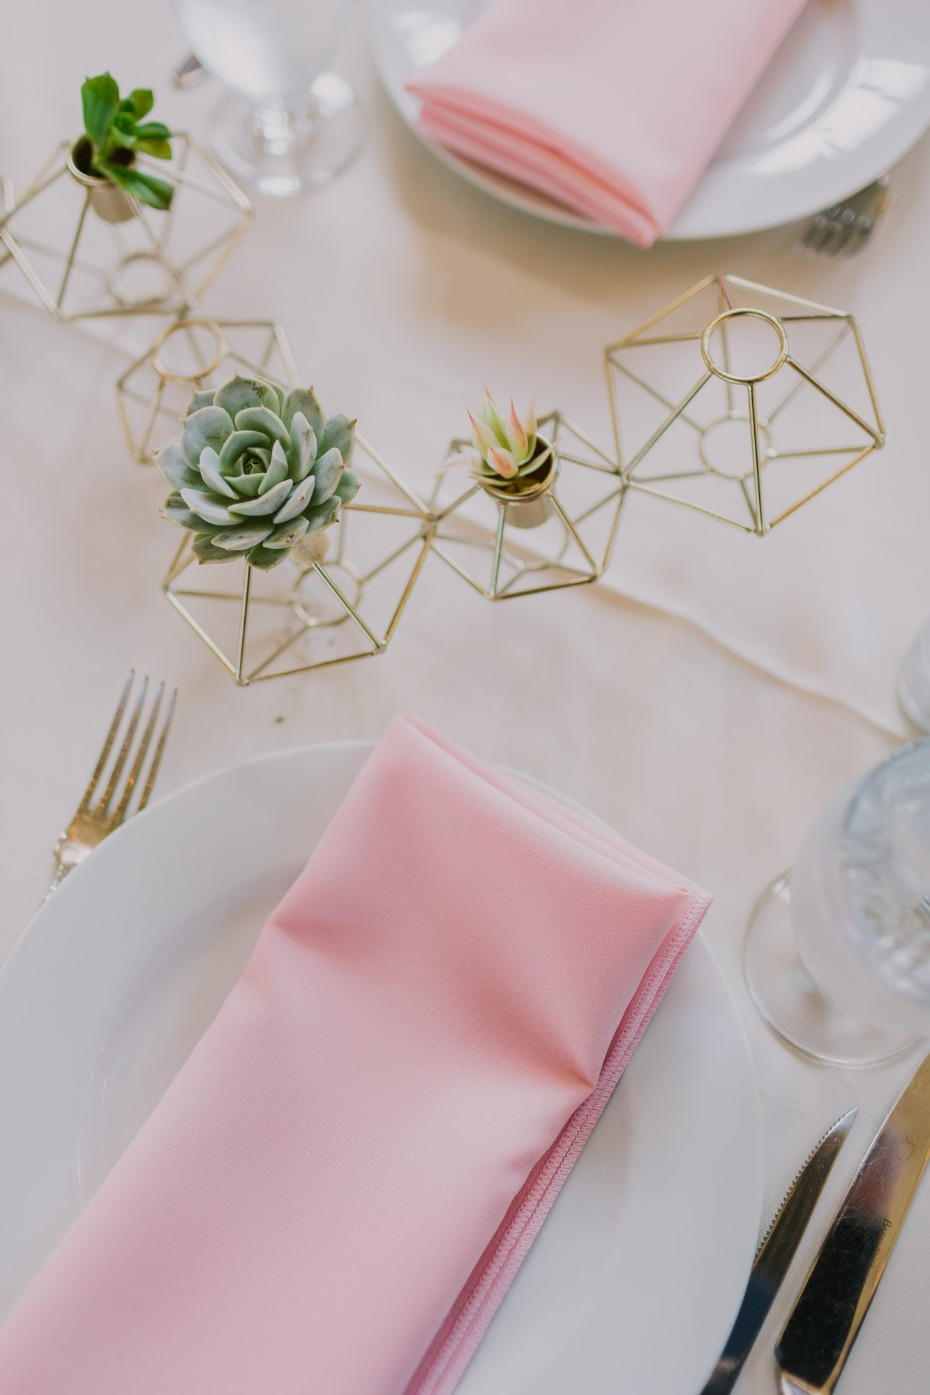 Table decor with succulents